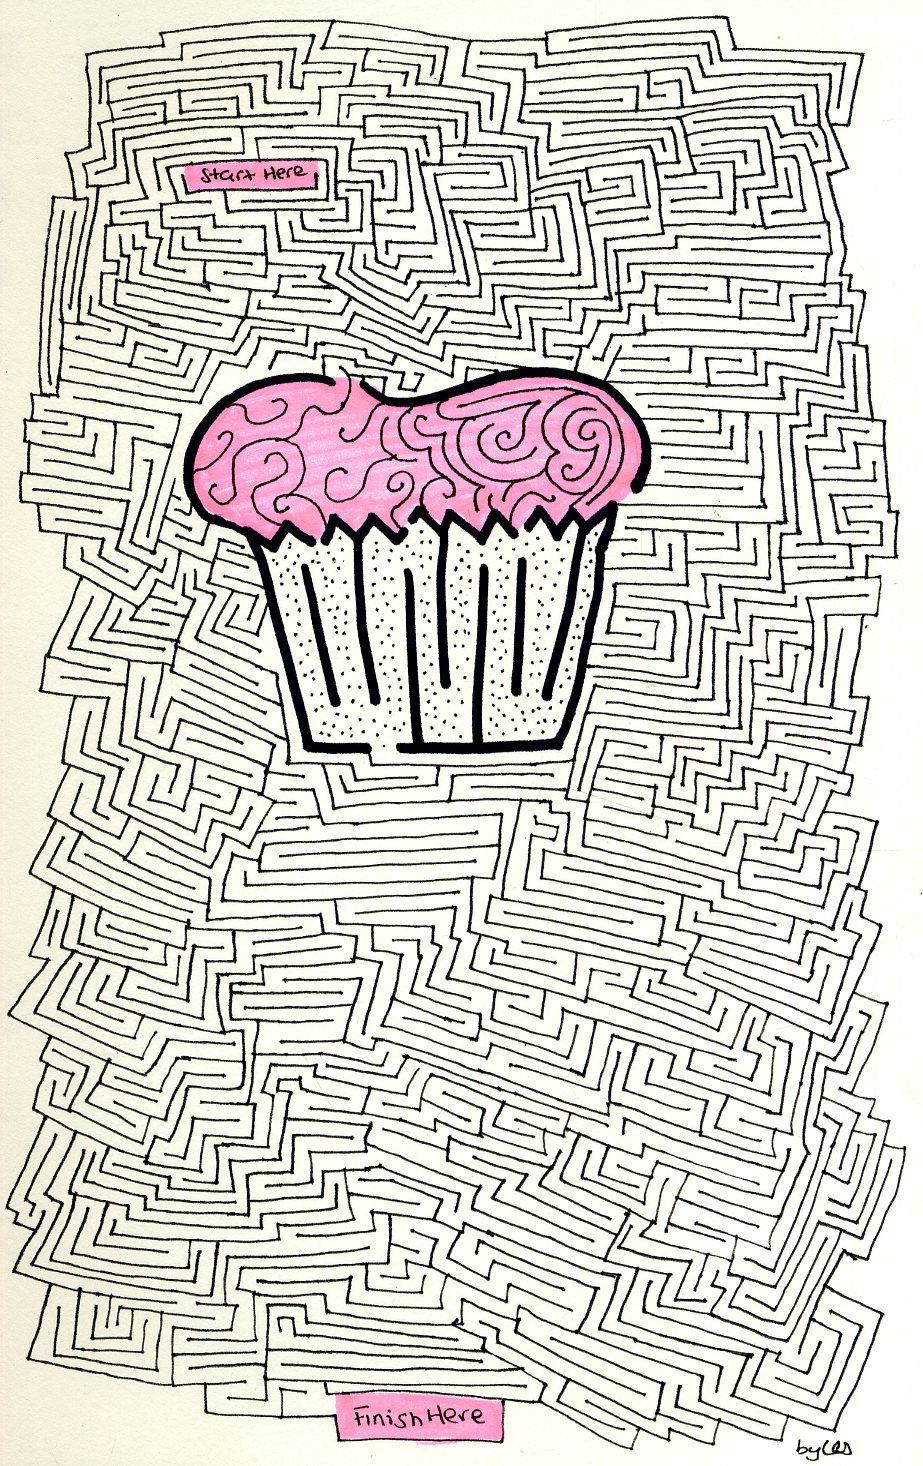 student work Maze drawing Blog